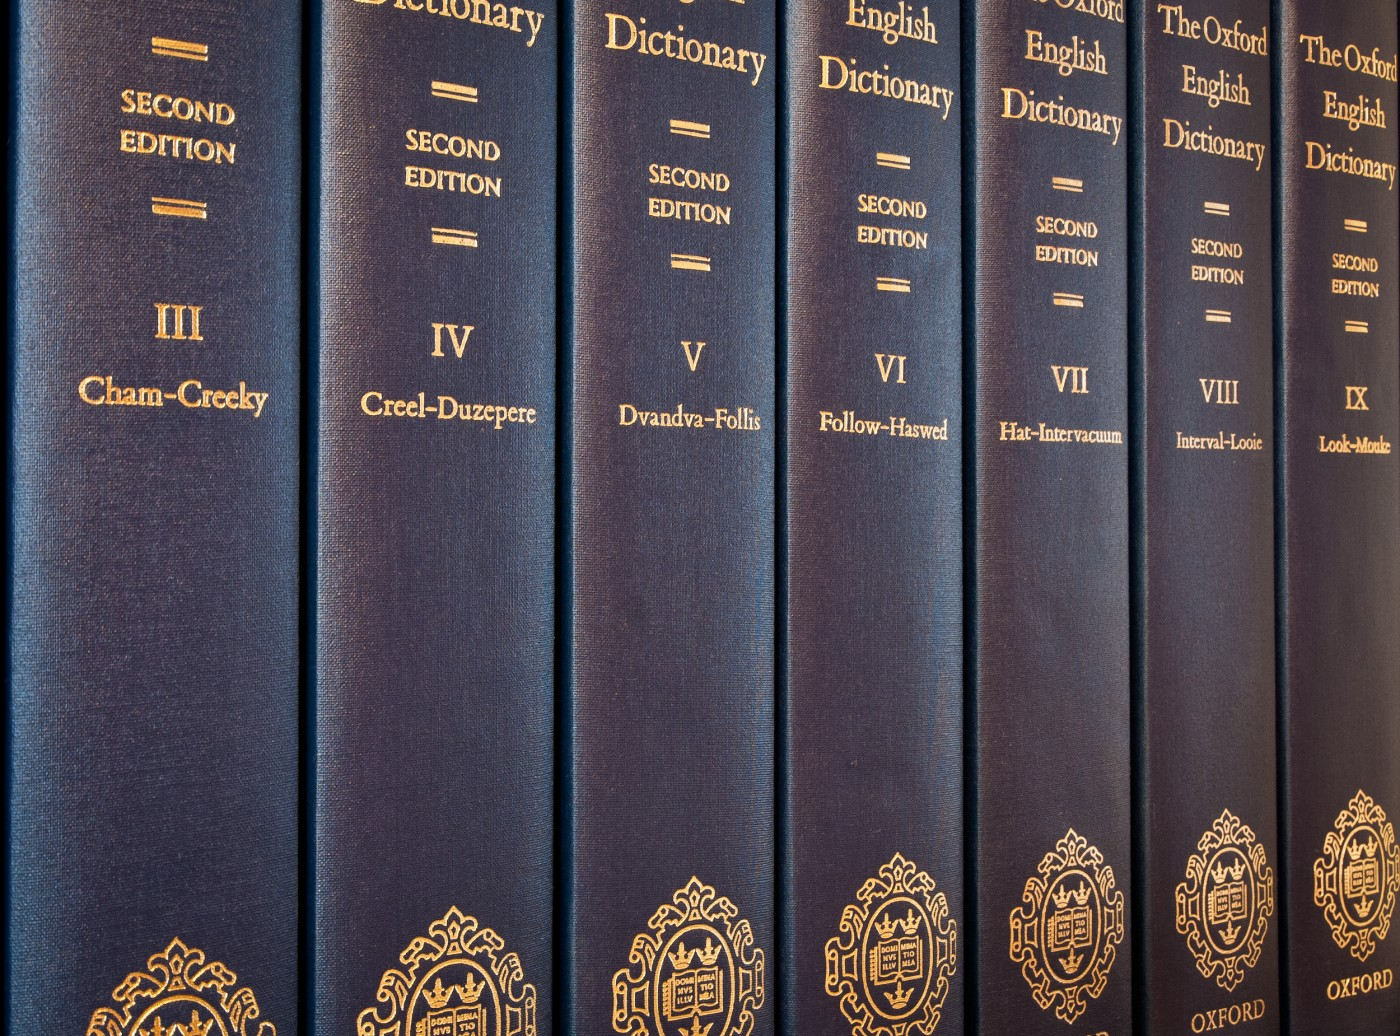 024 Oed2 Volumes Manual For Writers Of Researchs Theses And Dissertations Magnificent Research Papers A Amazon 9th Edition Pdf 8th 13 1400